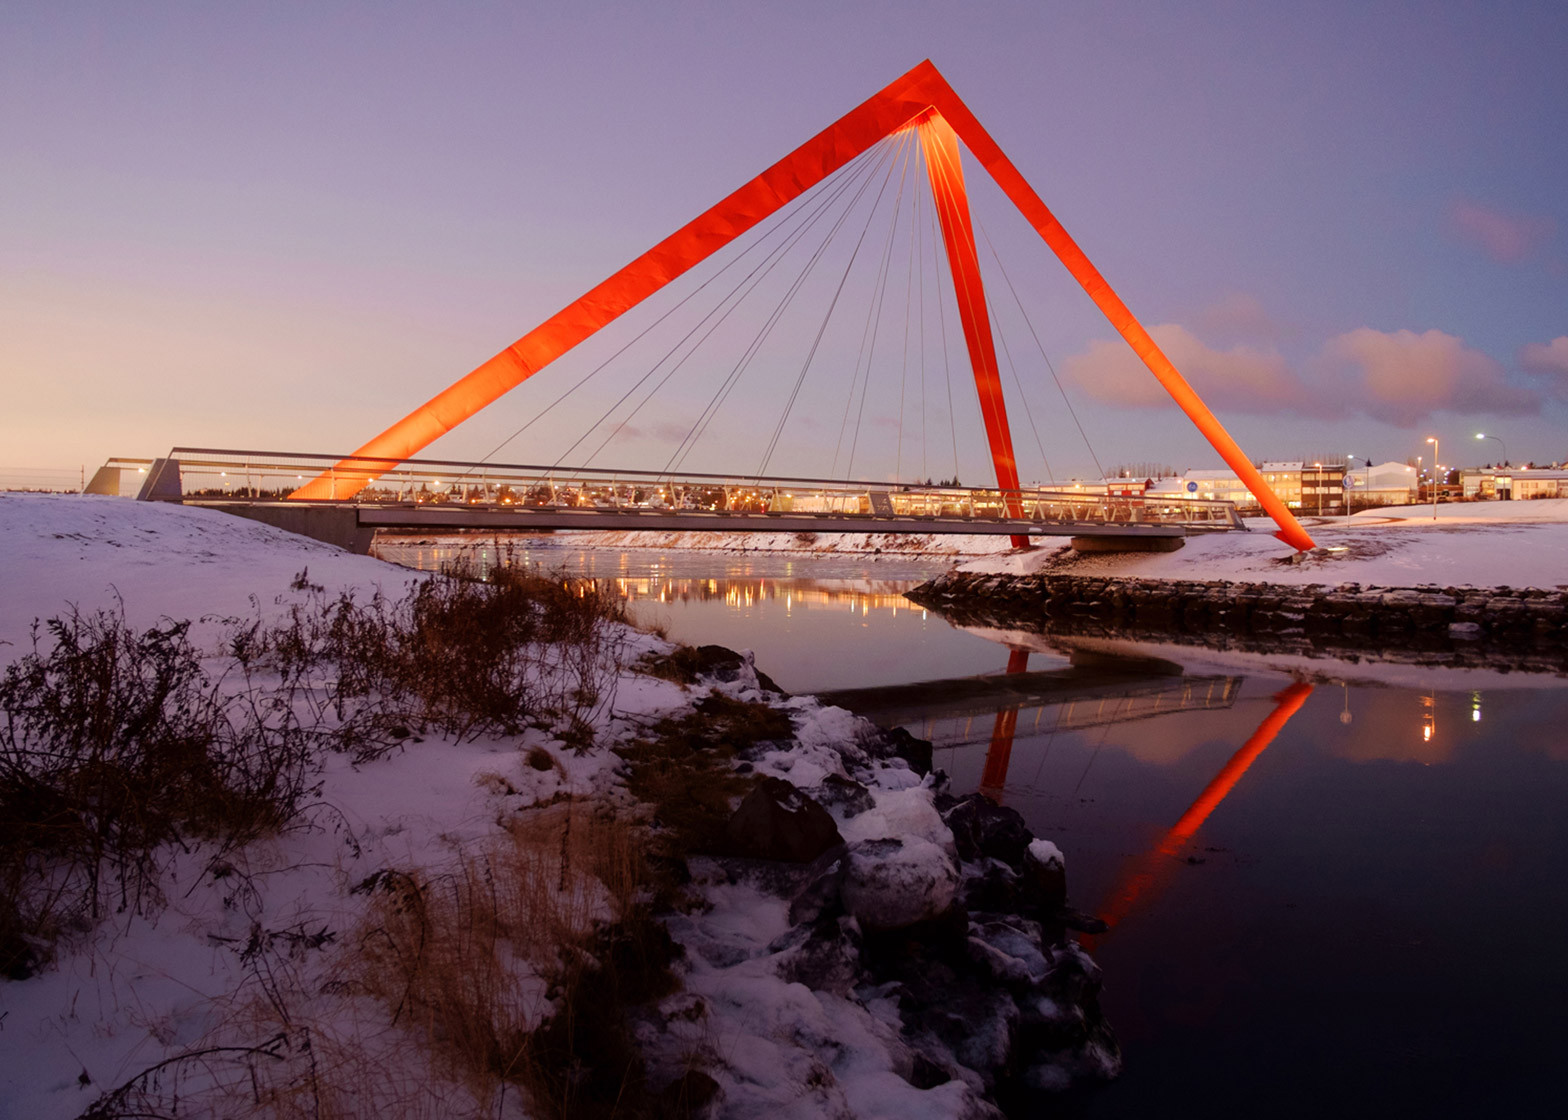 Bicycle and pedestrian bridges by Ragnhildur Kristjansdottir